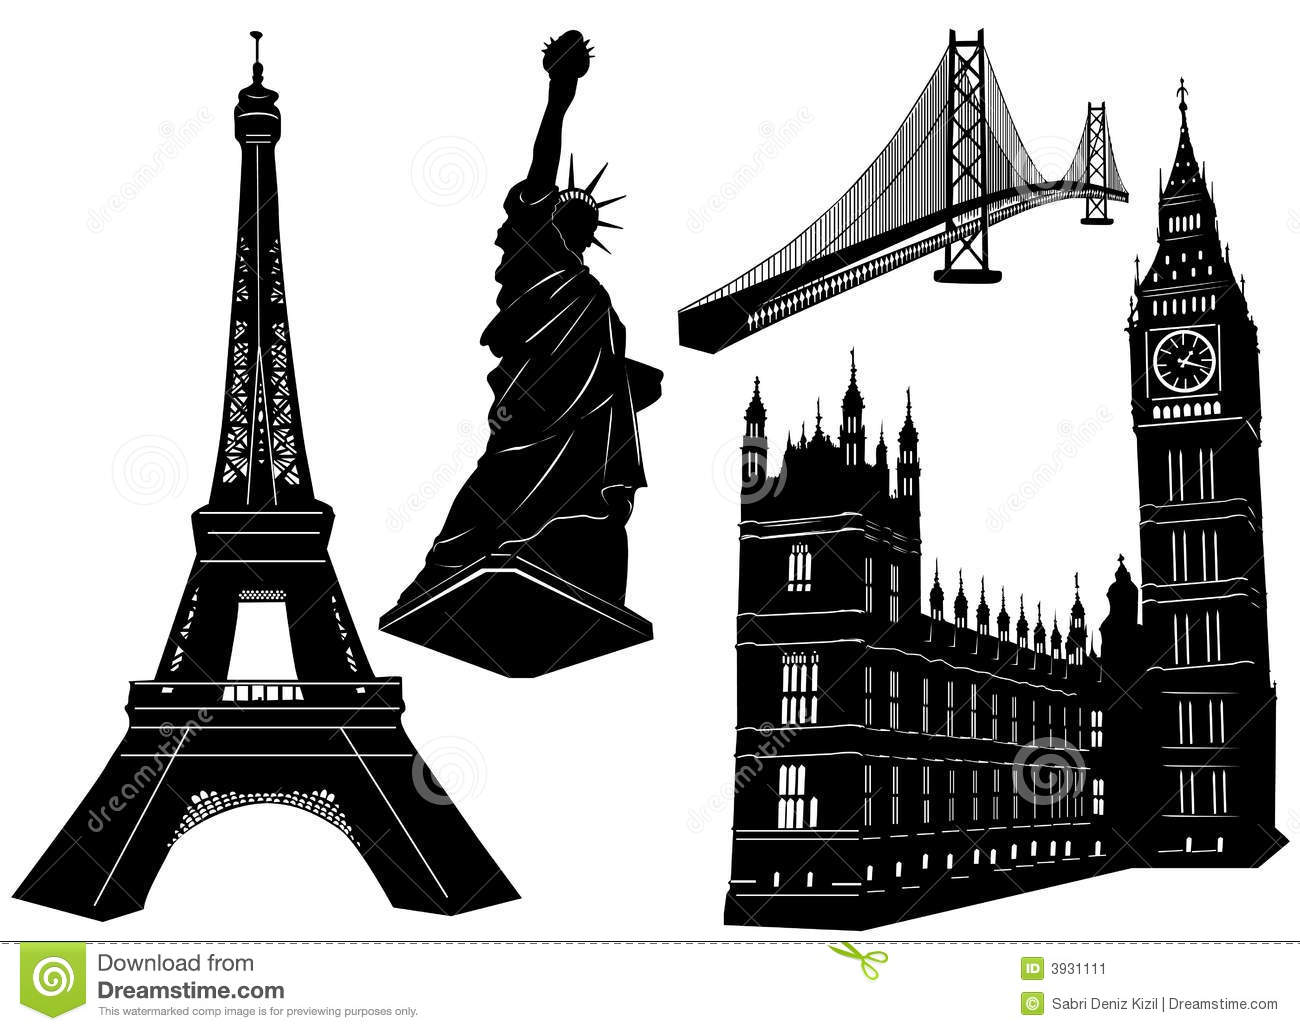 Architecture building clipart.